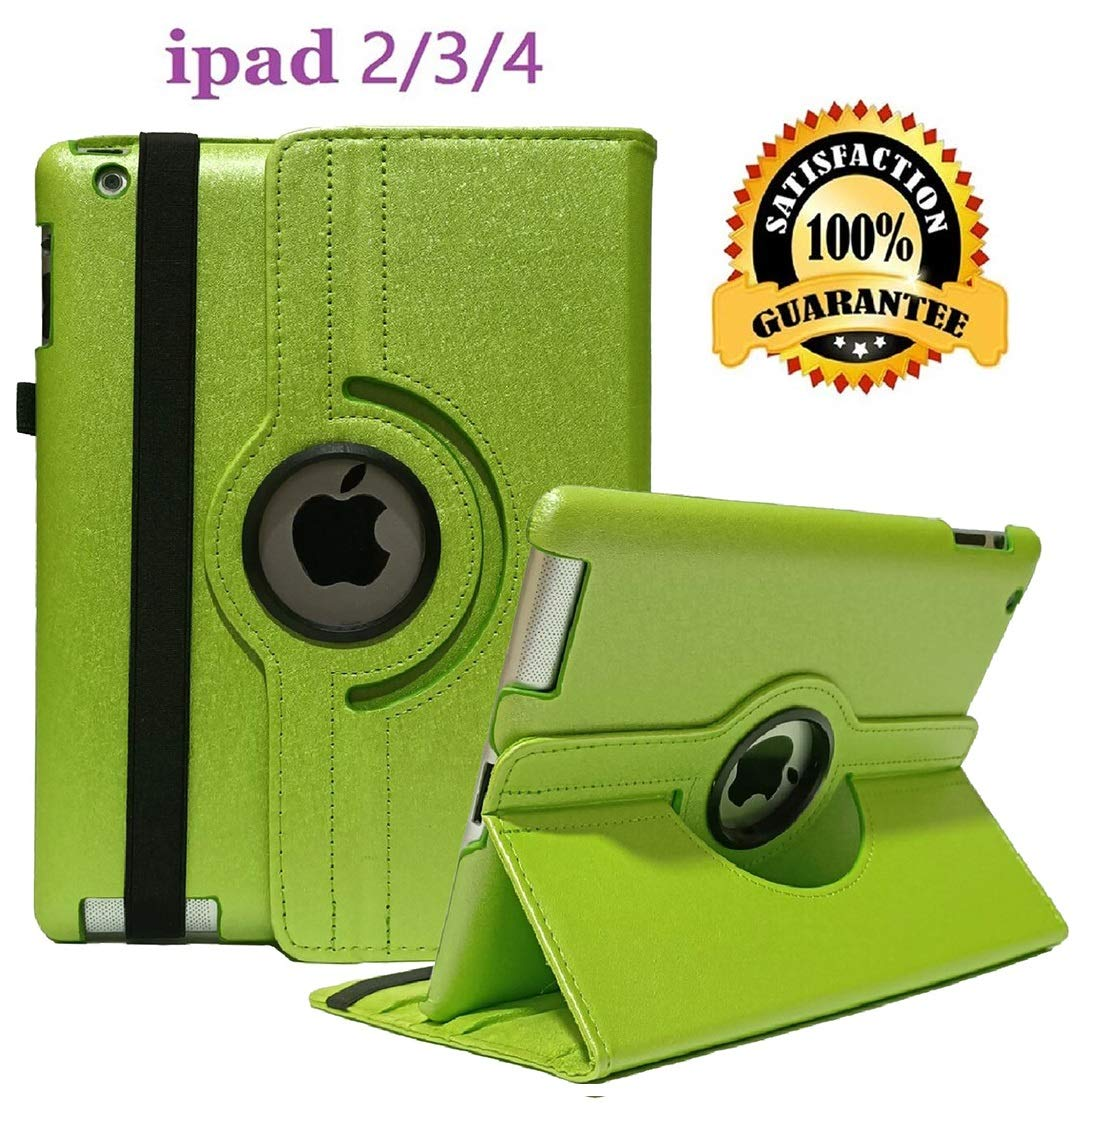 iPad 2/3/4 Case - 360 Degree Rotating Stand Smart Case Protective Cover with Auto Wake Up/Sleep Feature for Apple iPad 4, iPad 3 & iPad 2 (Pale Green)